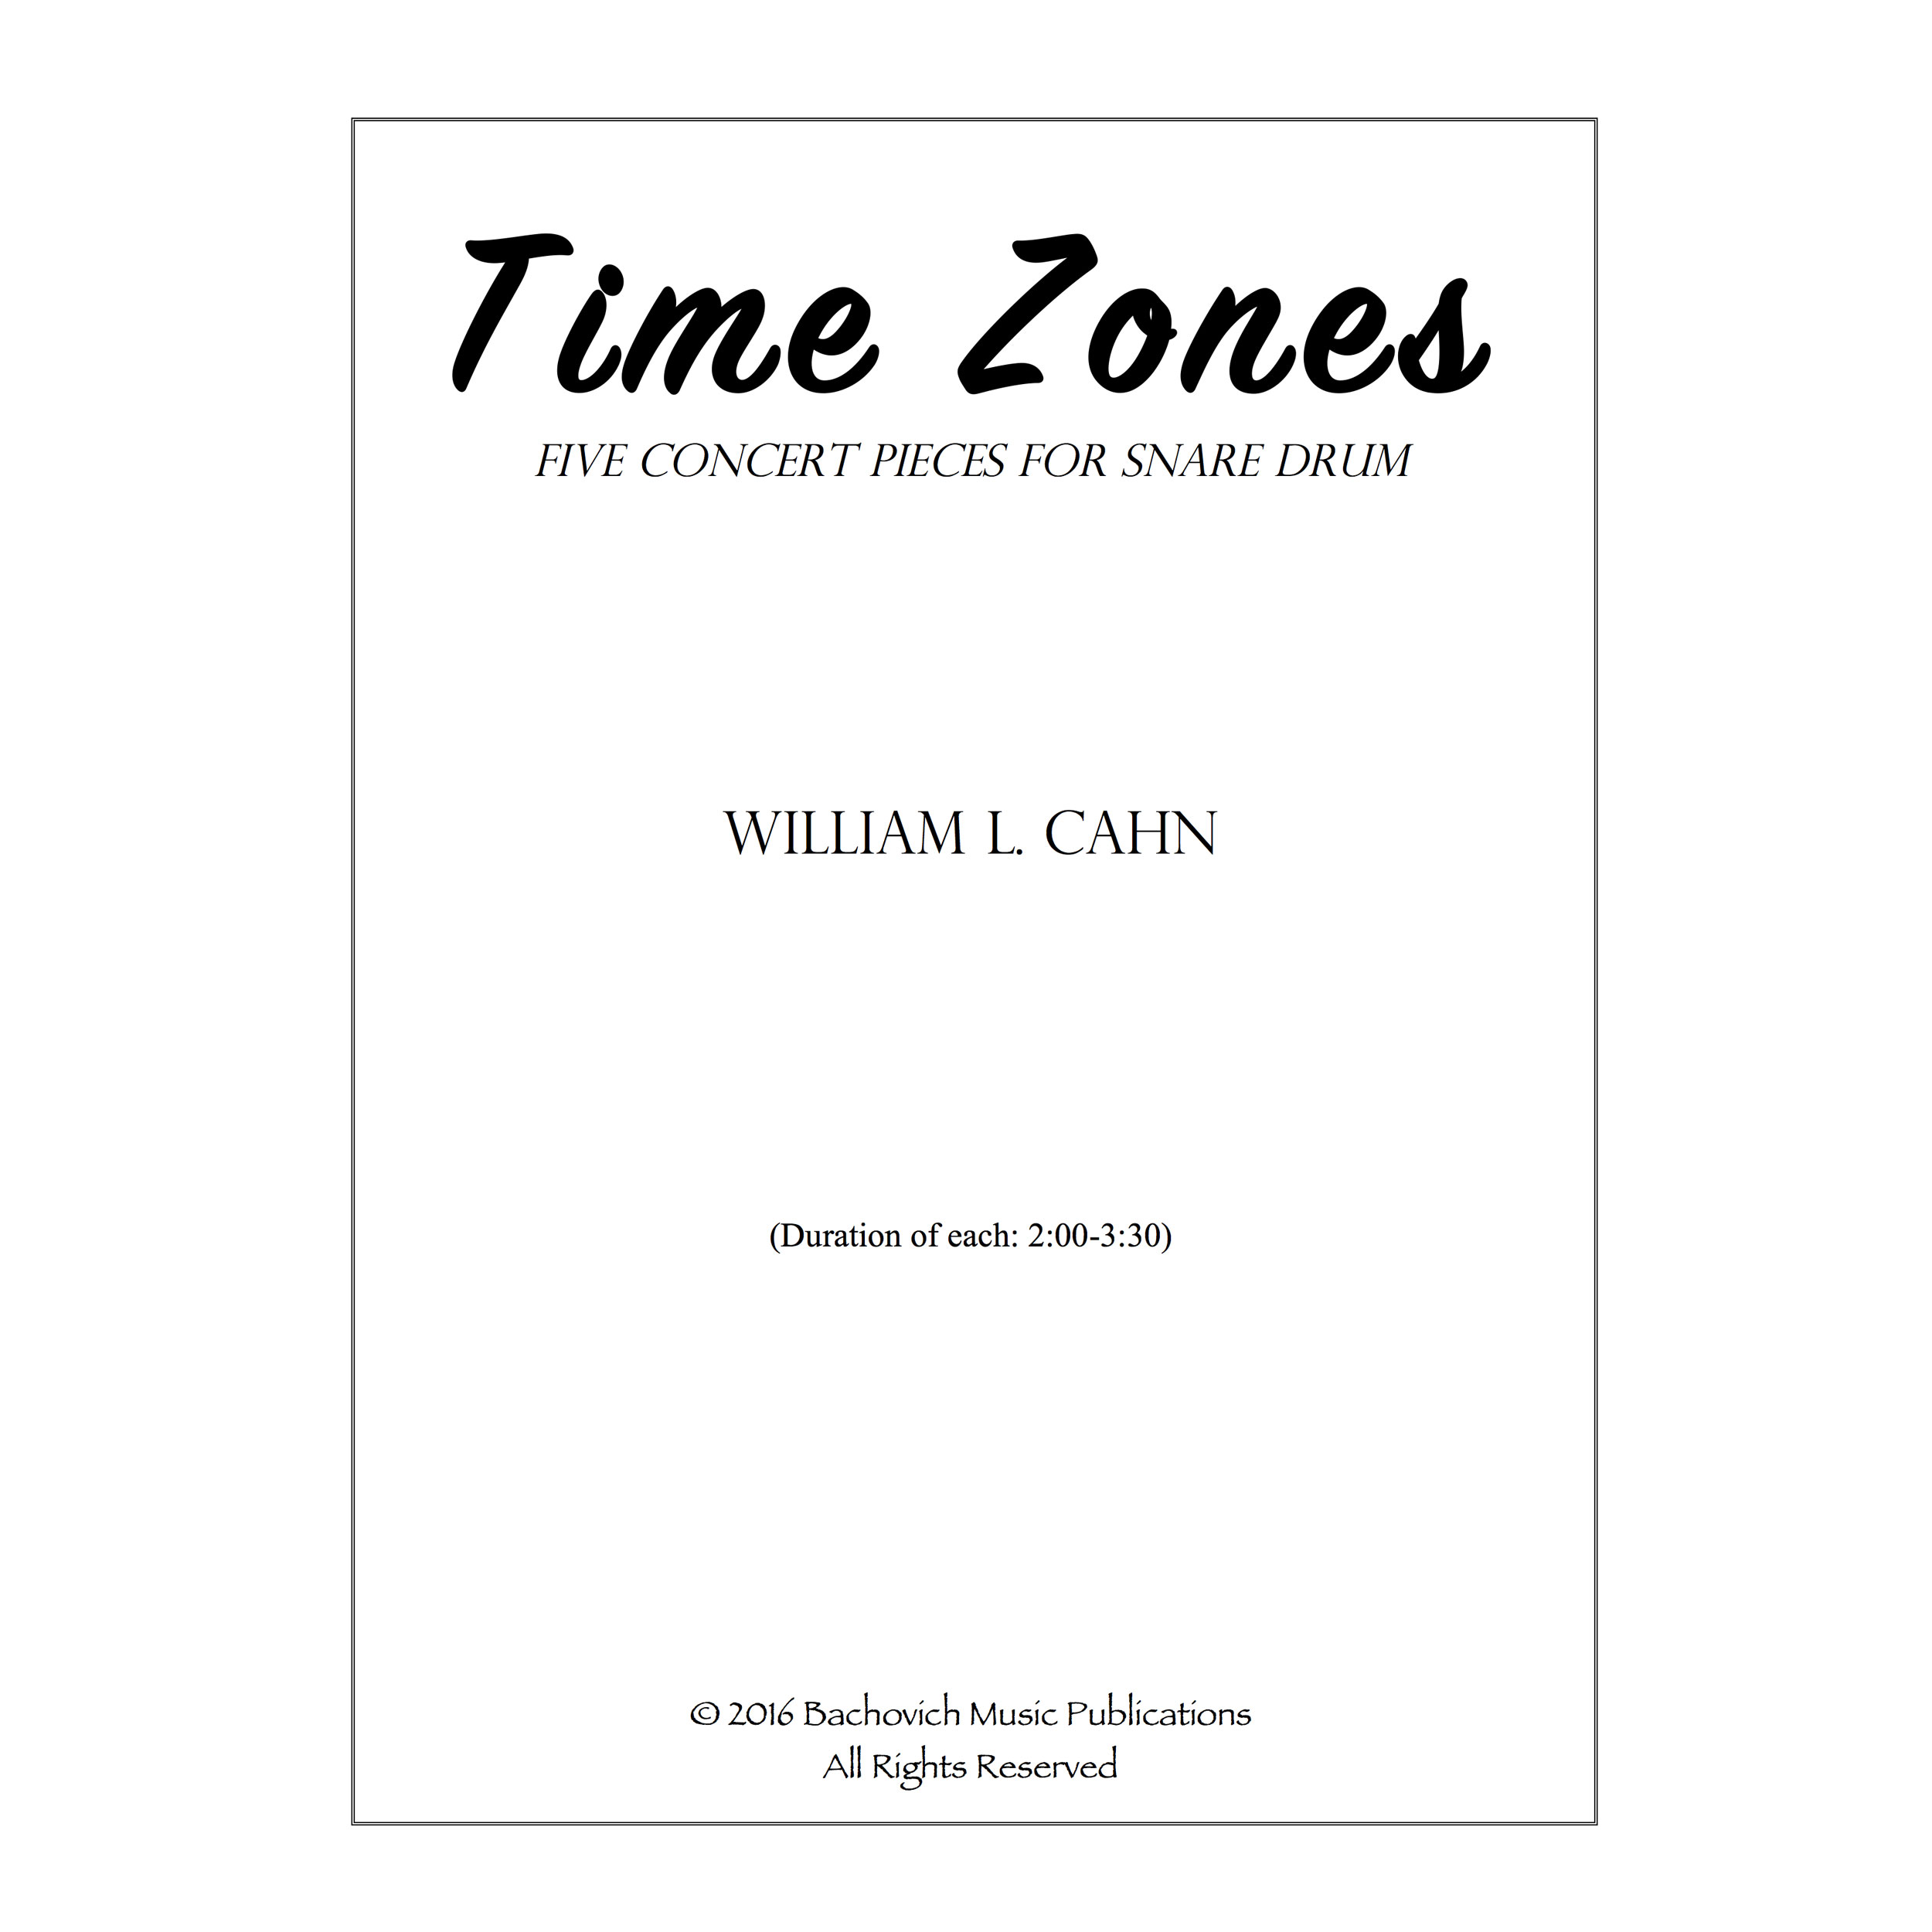 Time Zones by William Cahn